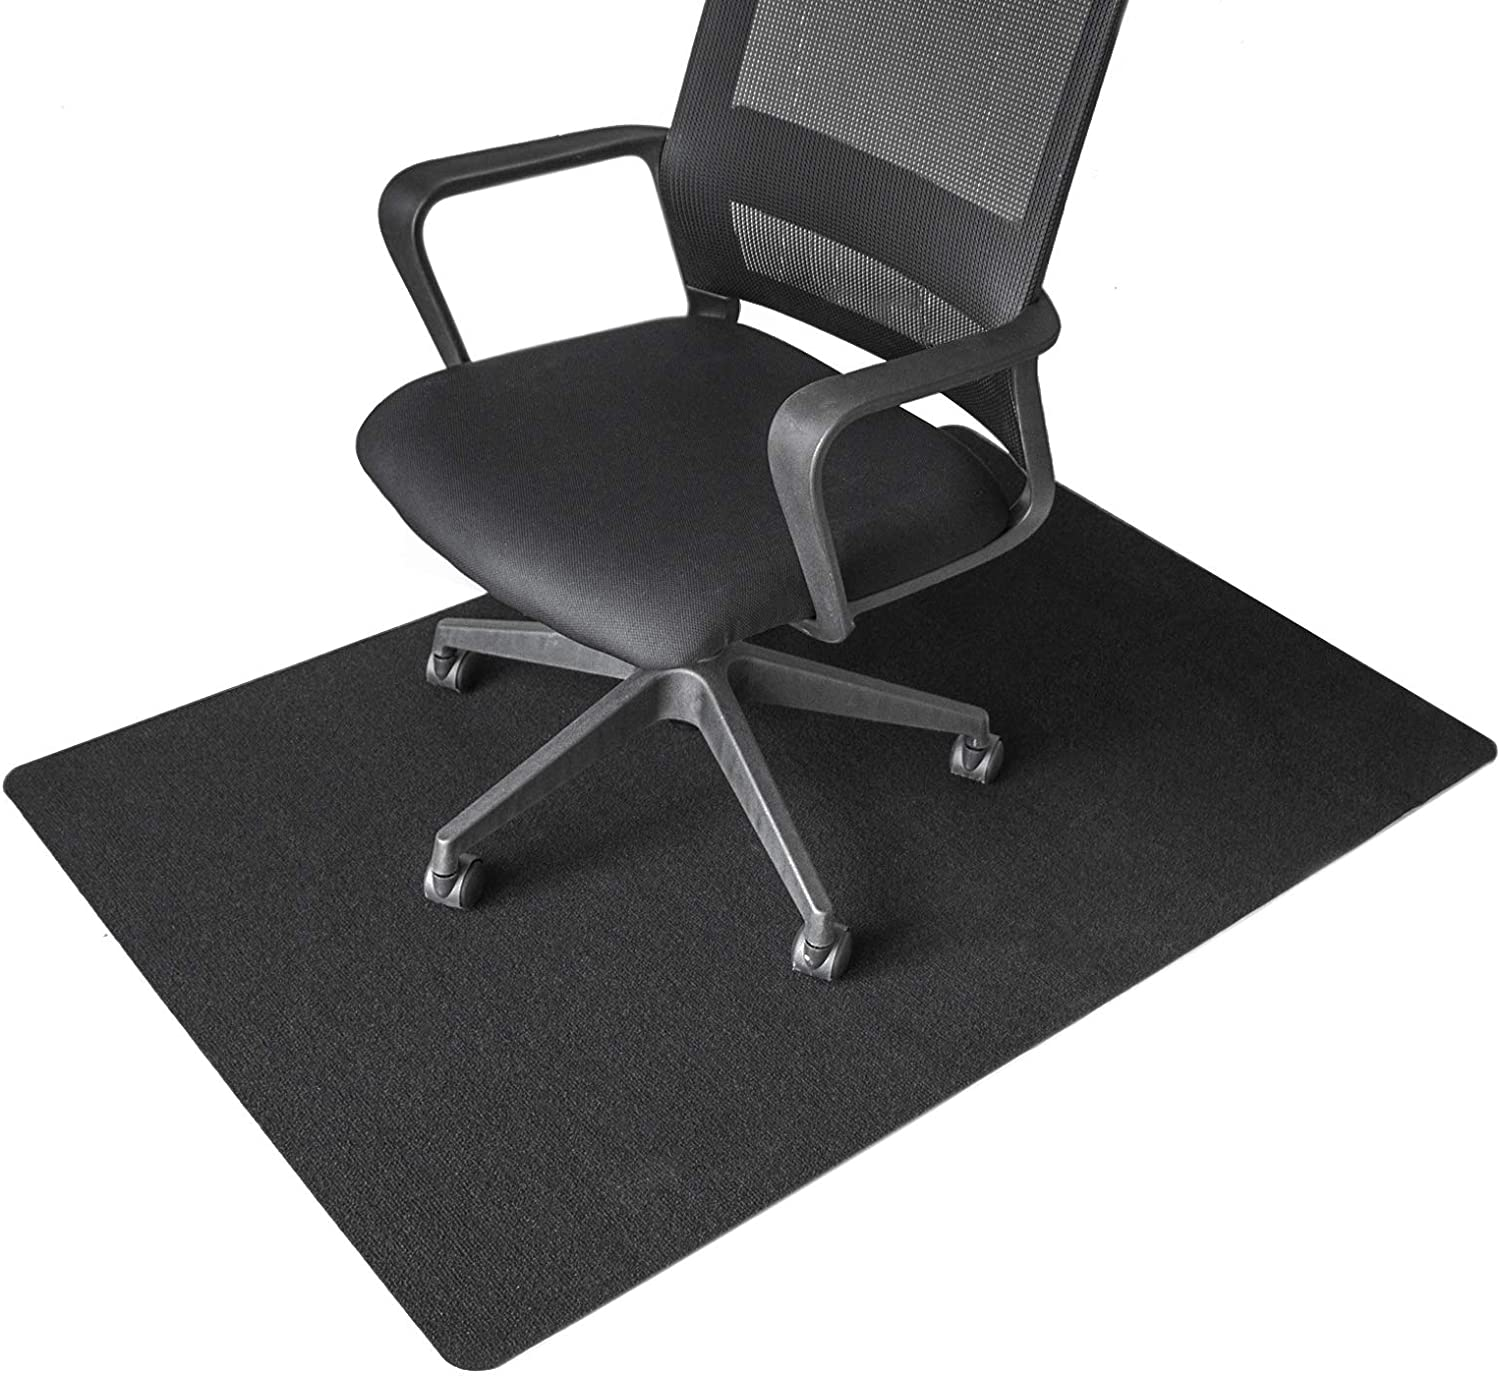 Aobopar Office Chair Mat Desk Chair Mat for Protecting Hardwood Floor Thick Floor Protector Home and Office Desk Chair Carpet (55